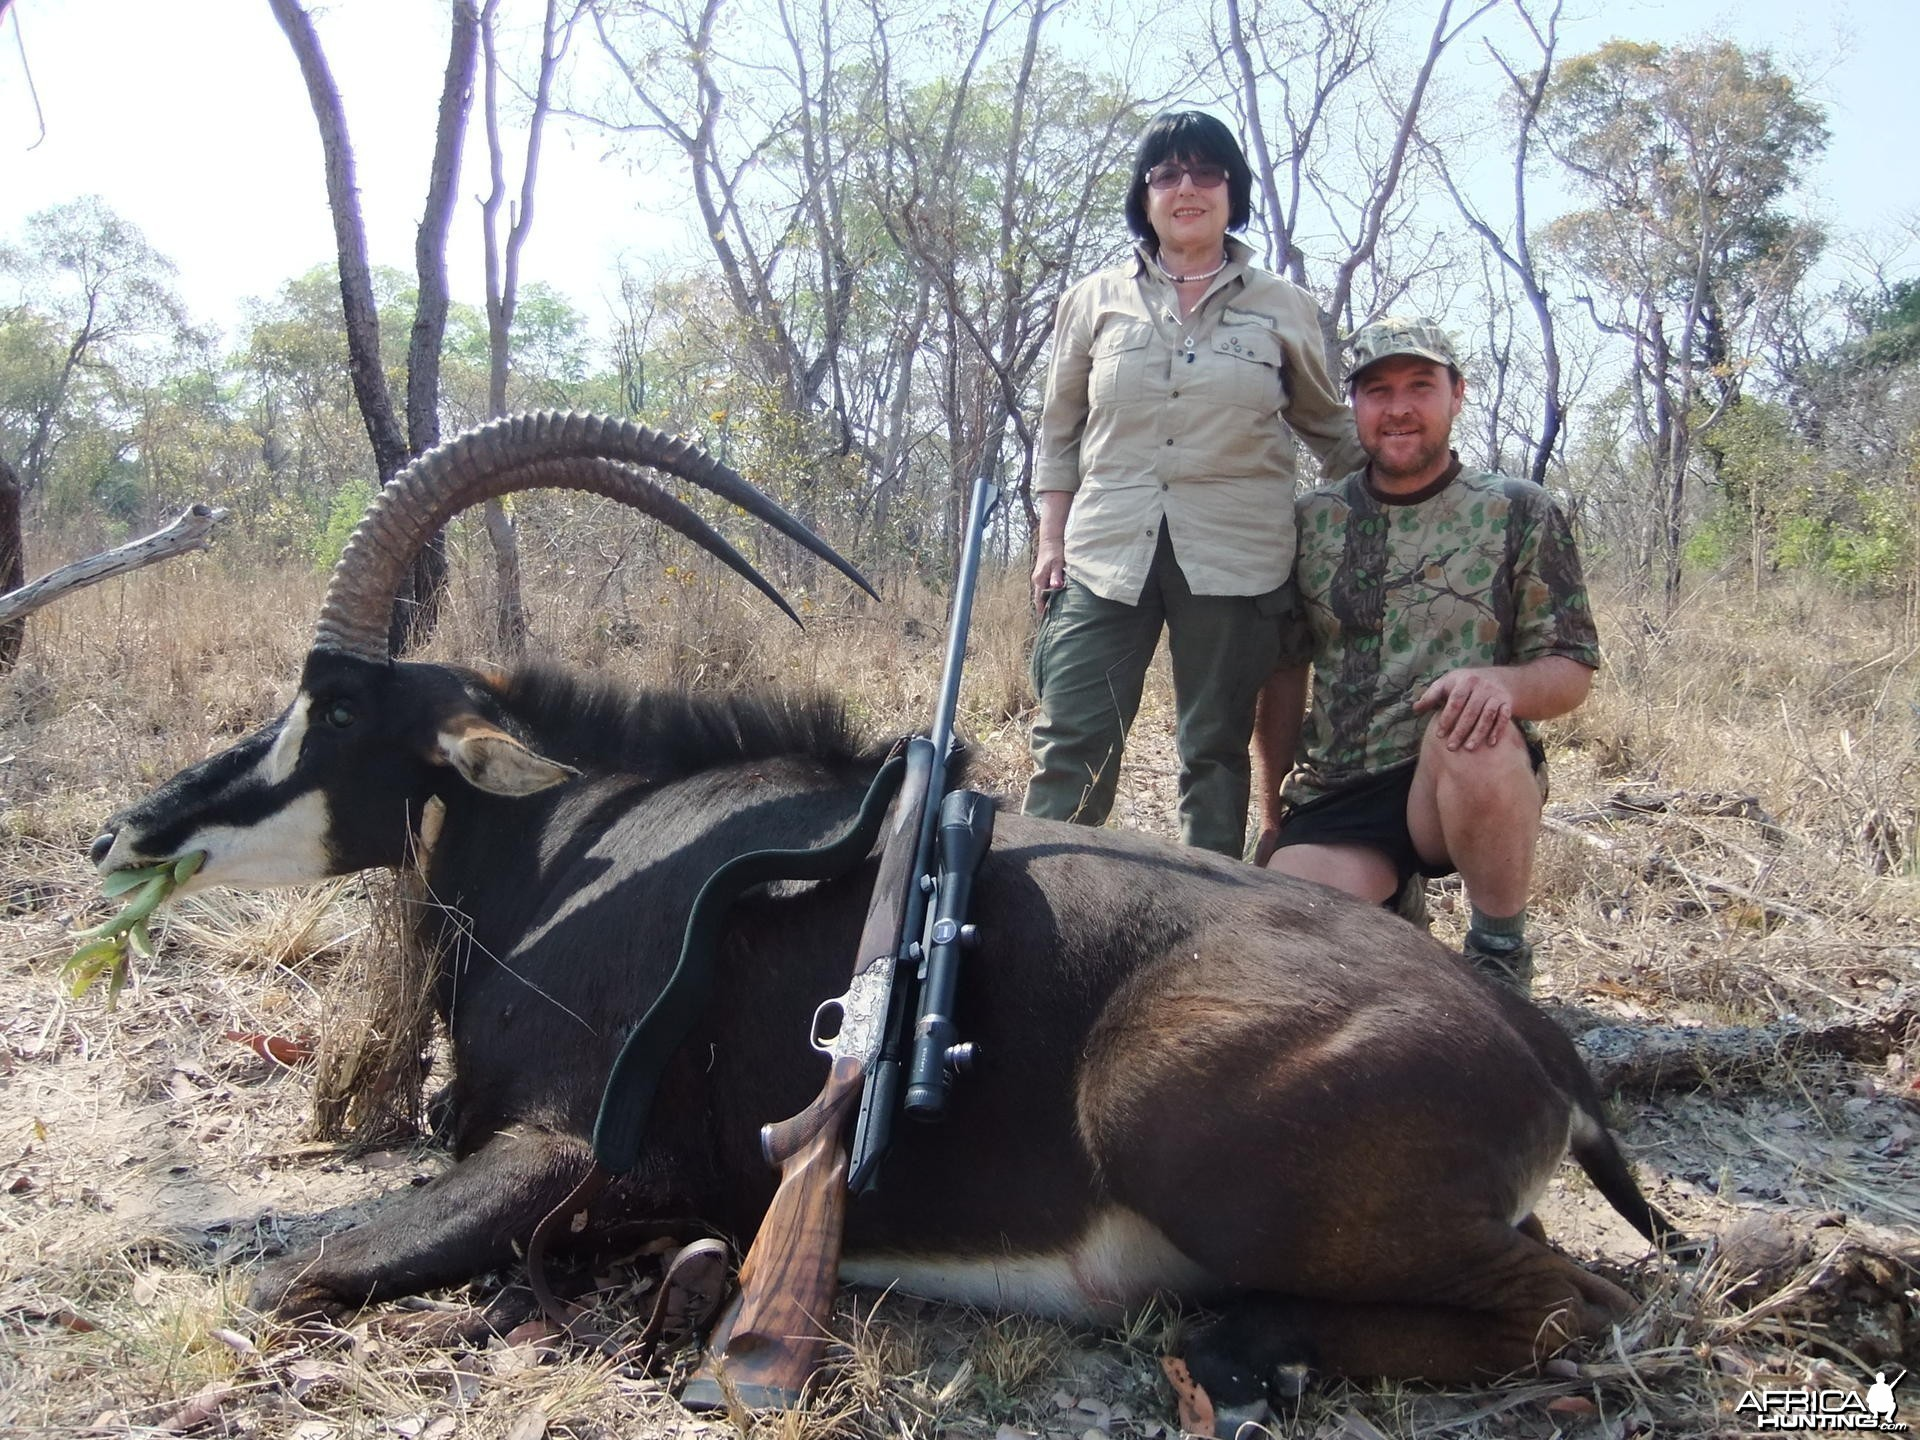 Sable hunted with Balla-Balla Safaris in Zambia